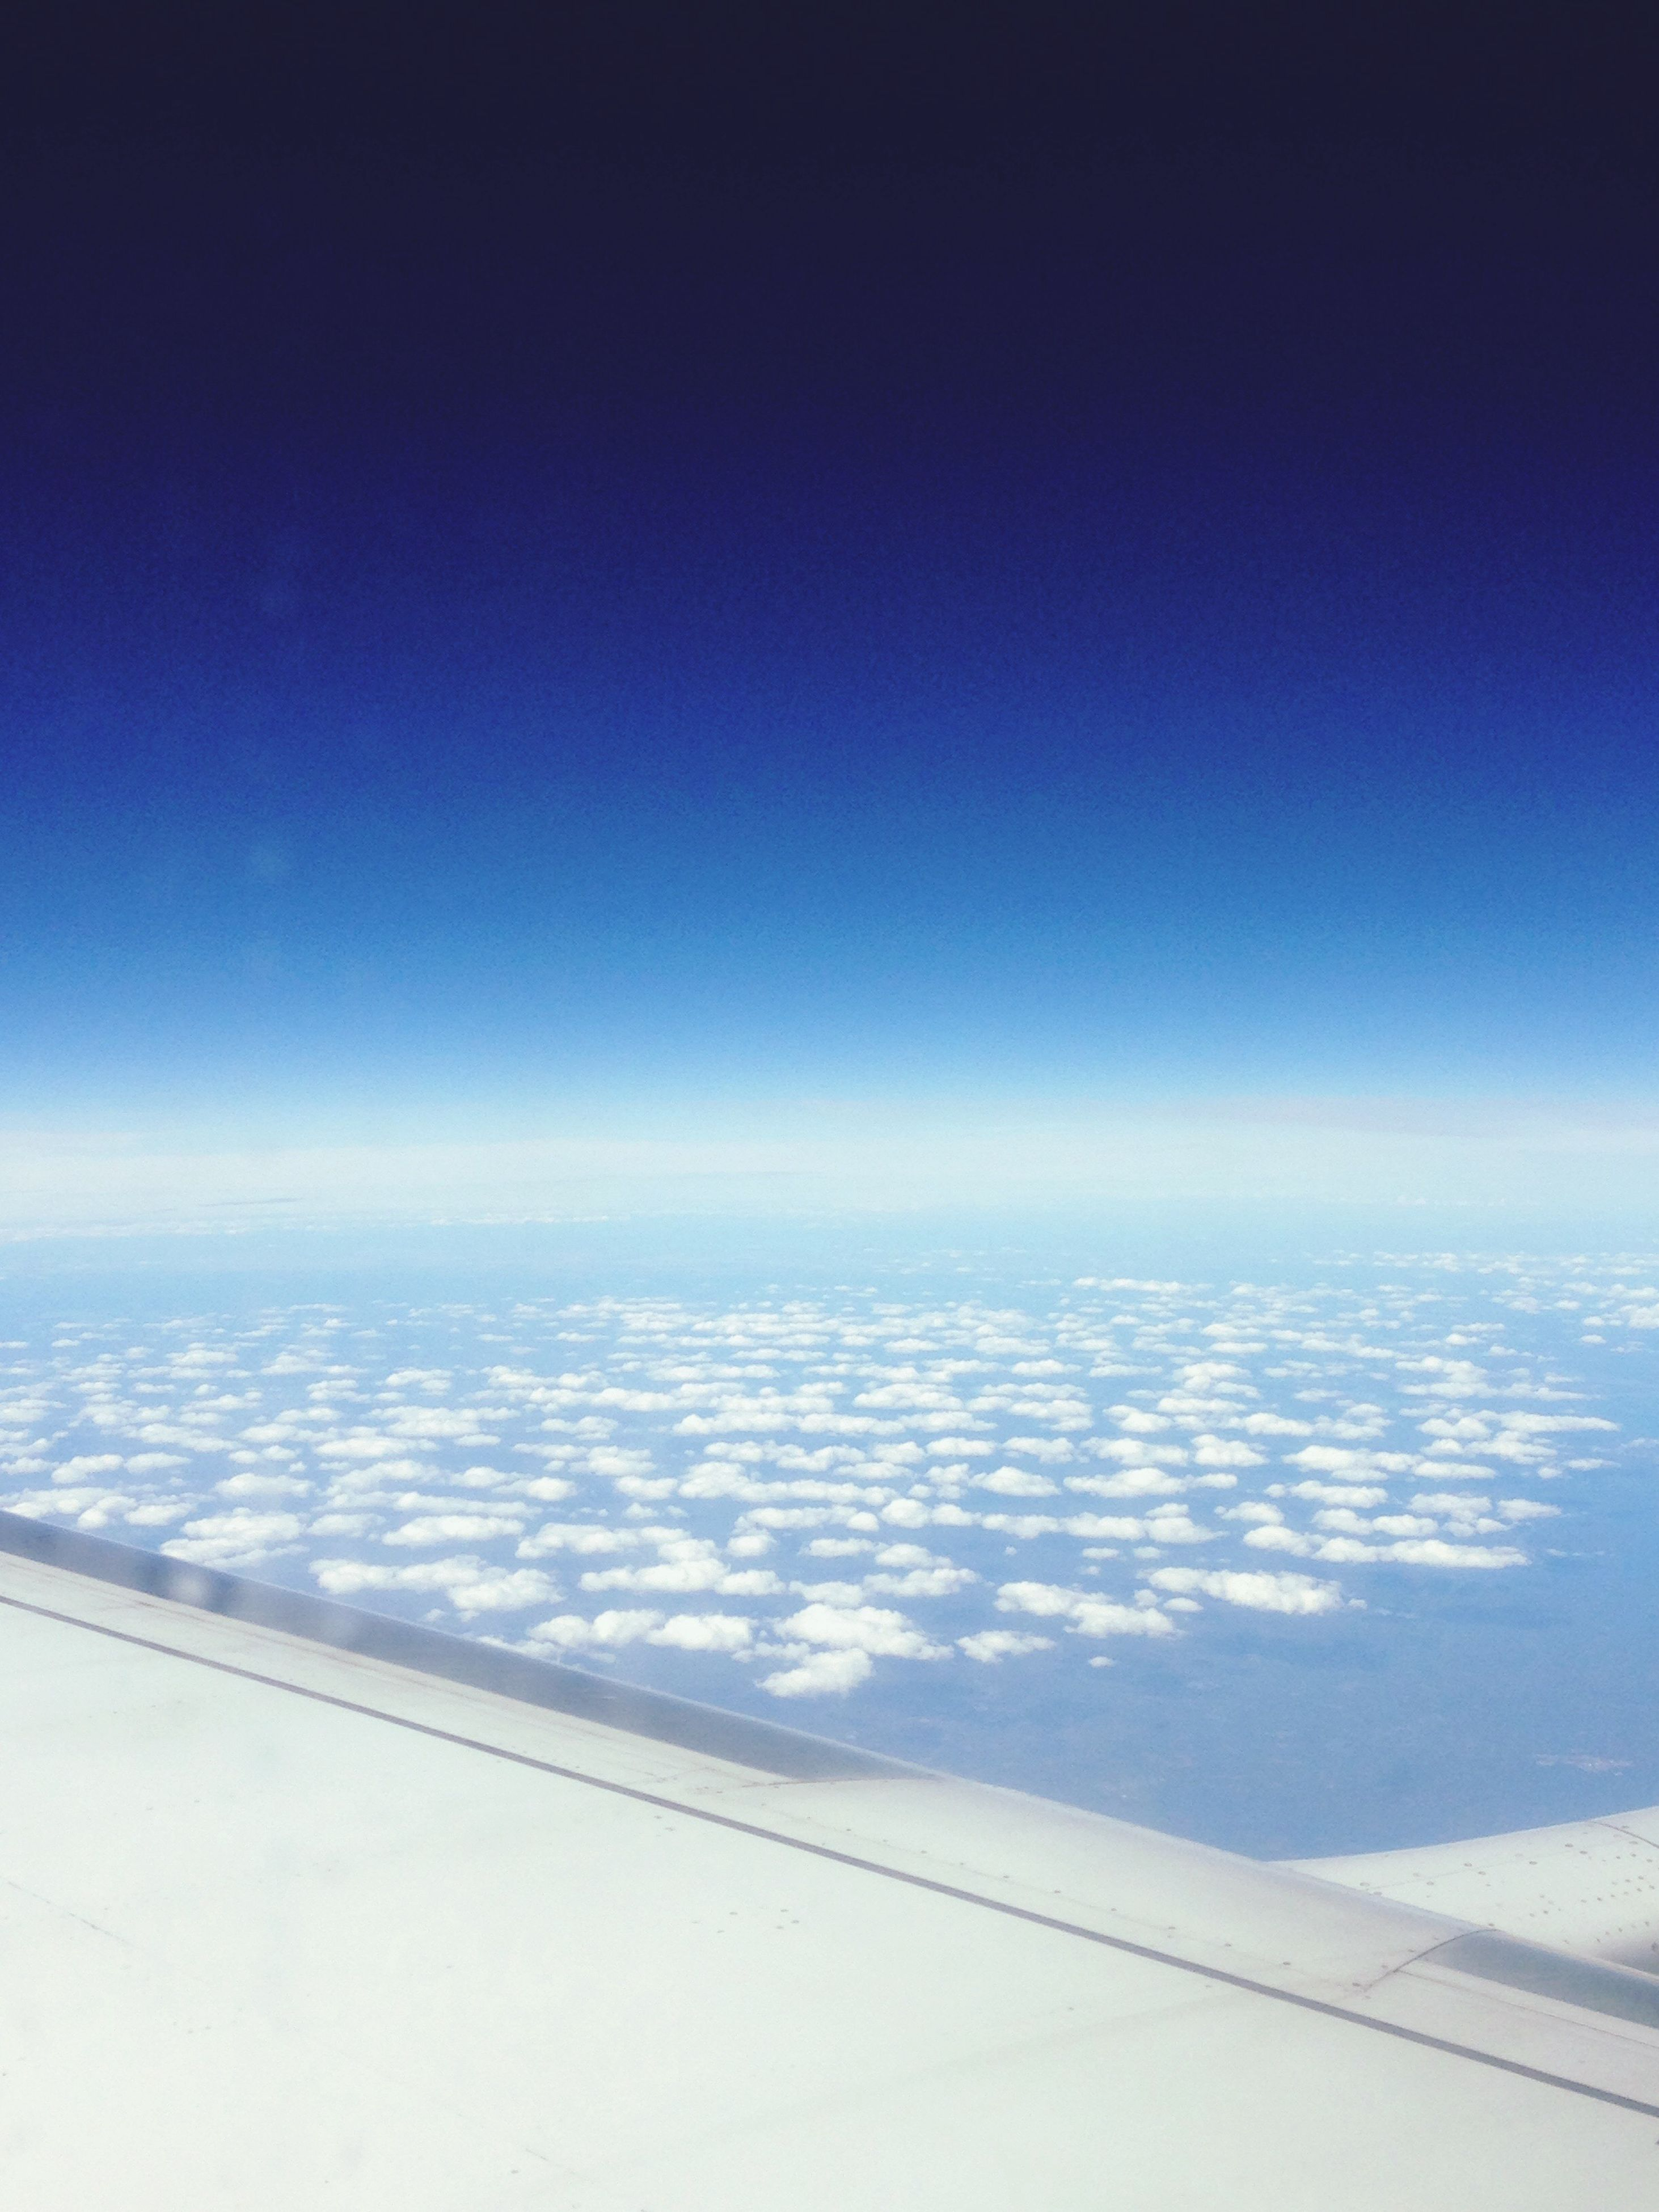 airplane, flying, blue, transportation, air vehicle, travel, cloudscape, scenics, mode of transport, on the move, part of, aircraft wing, aerial view, sky, cropped, clear sky, beauty in nature, white, copy space, majestic, cloud, cloud - sky, the natural world, tranquil scene, journey, nature, day, tranquility, meteorology, mid-air, heaven, sea